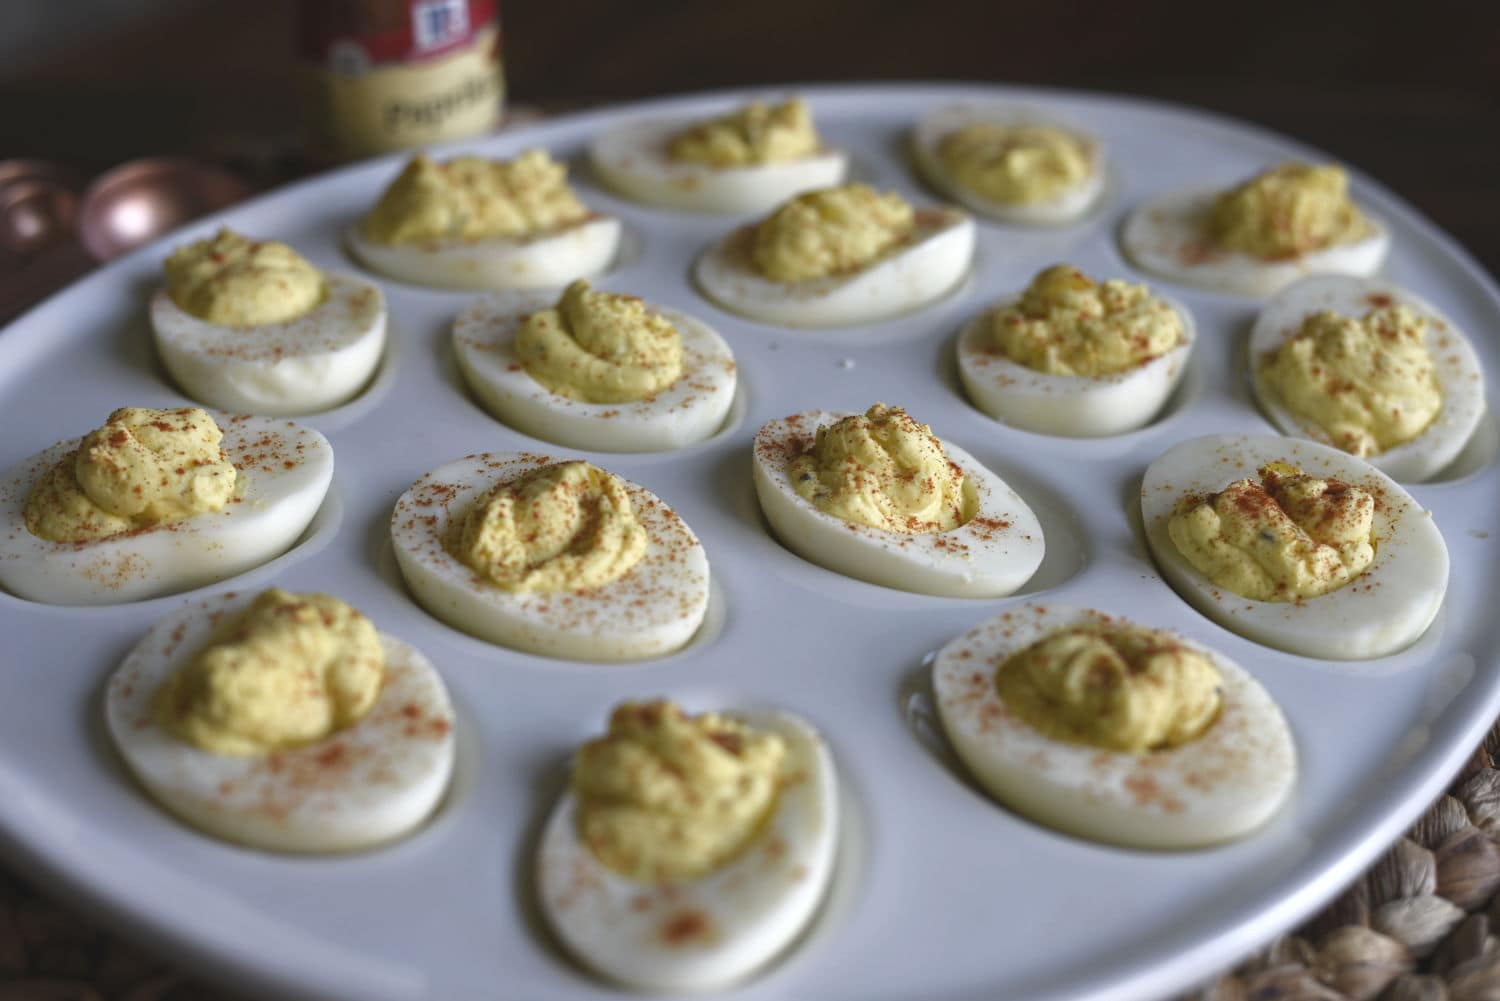 a plate of deviled eggs sitting on a table